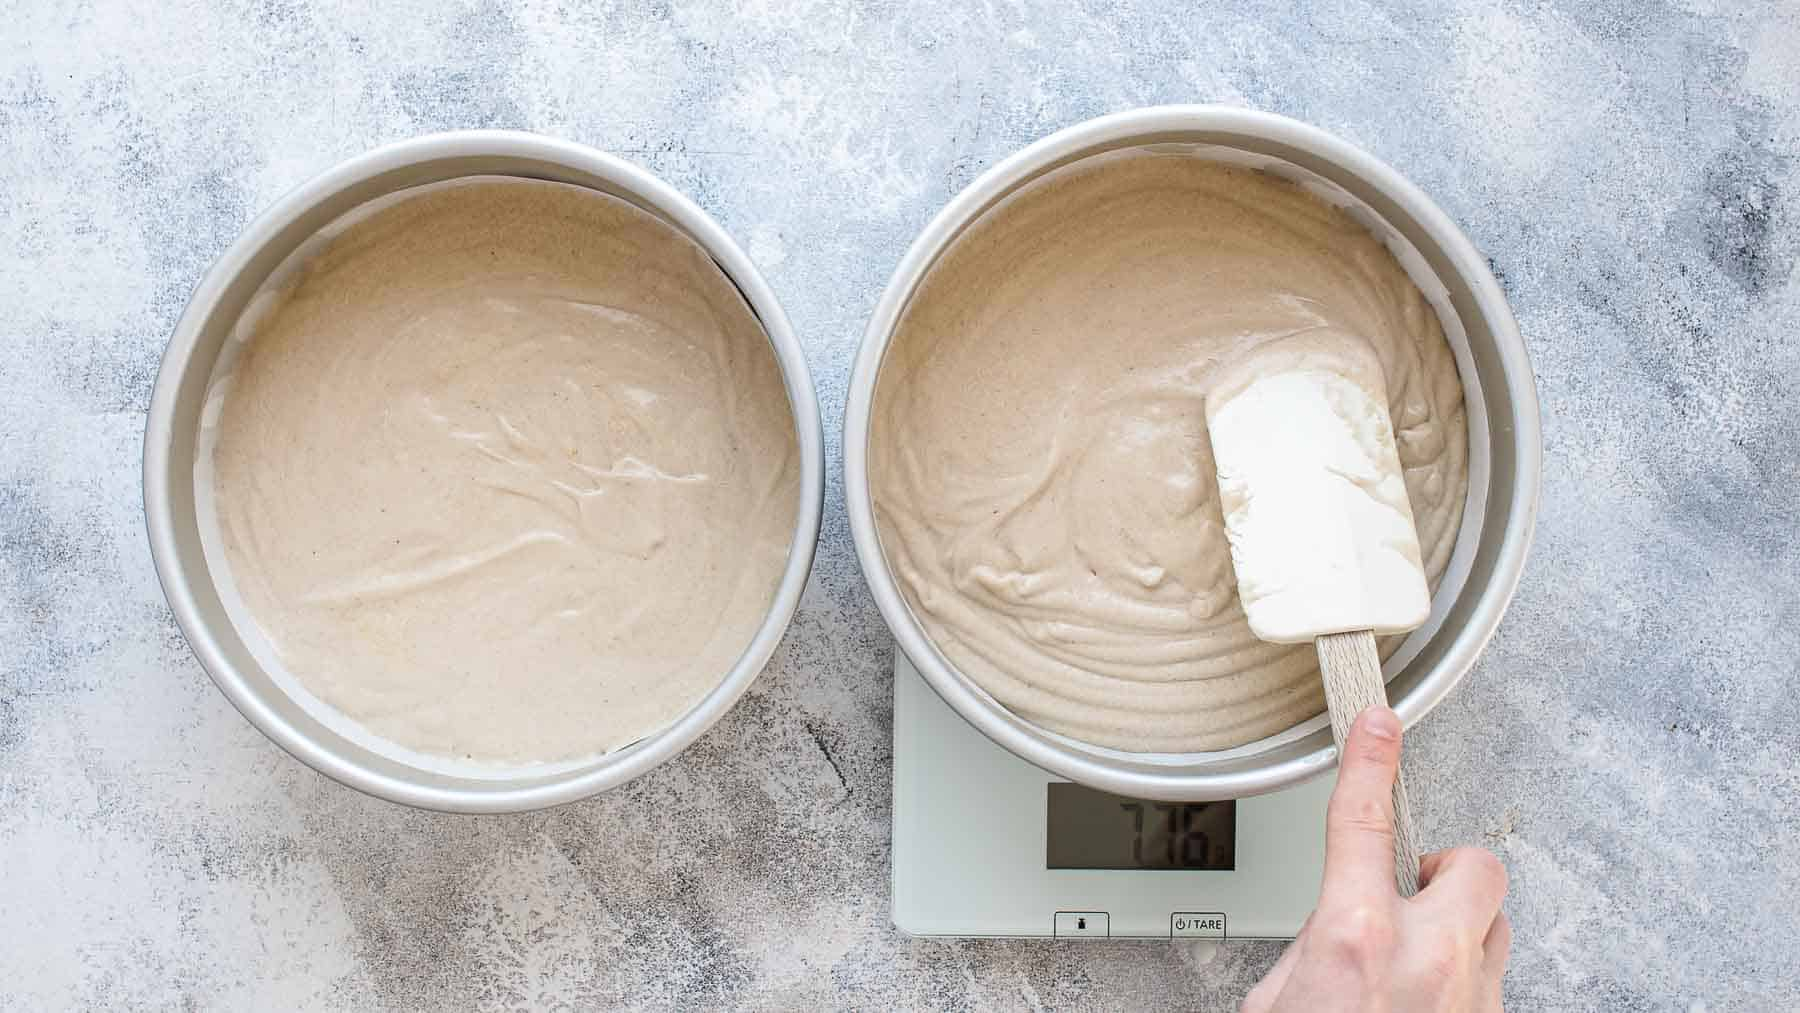 pouring batter into cake pan and measuring